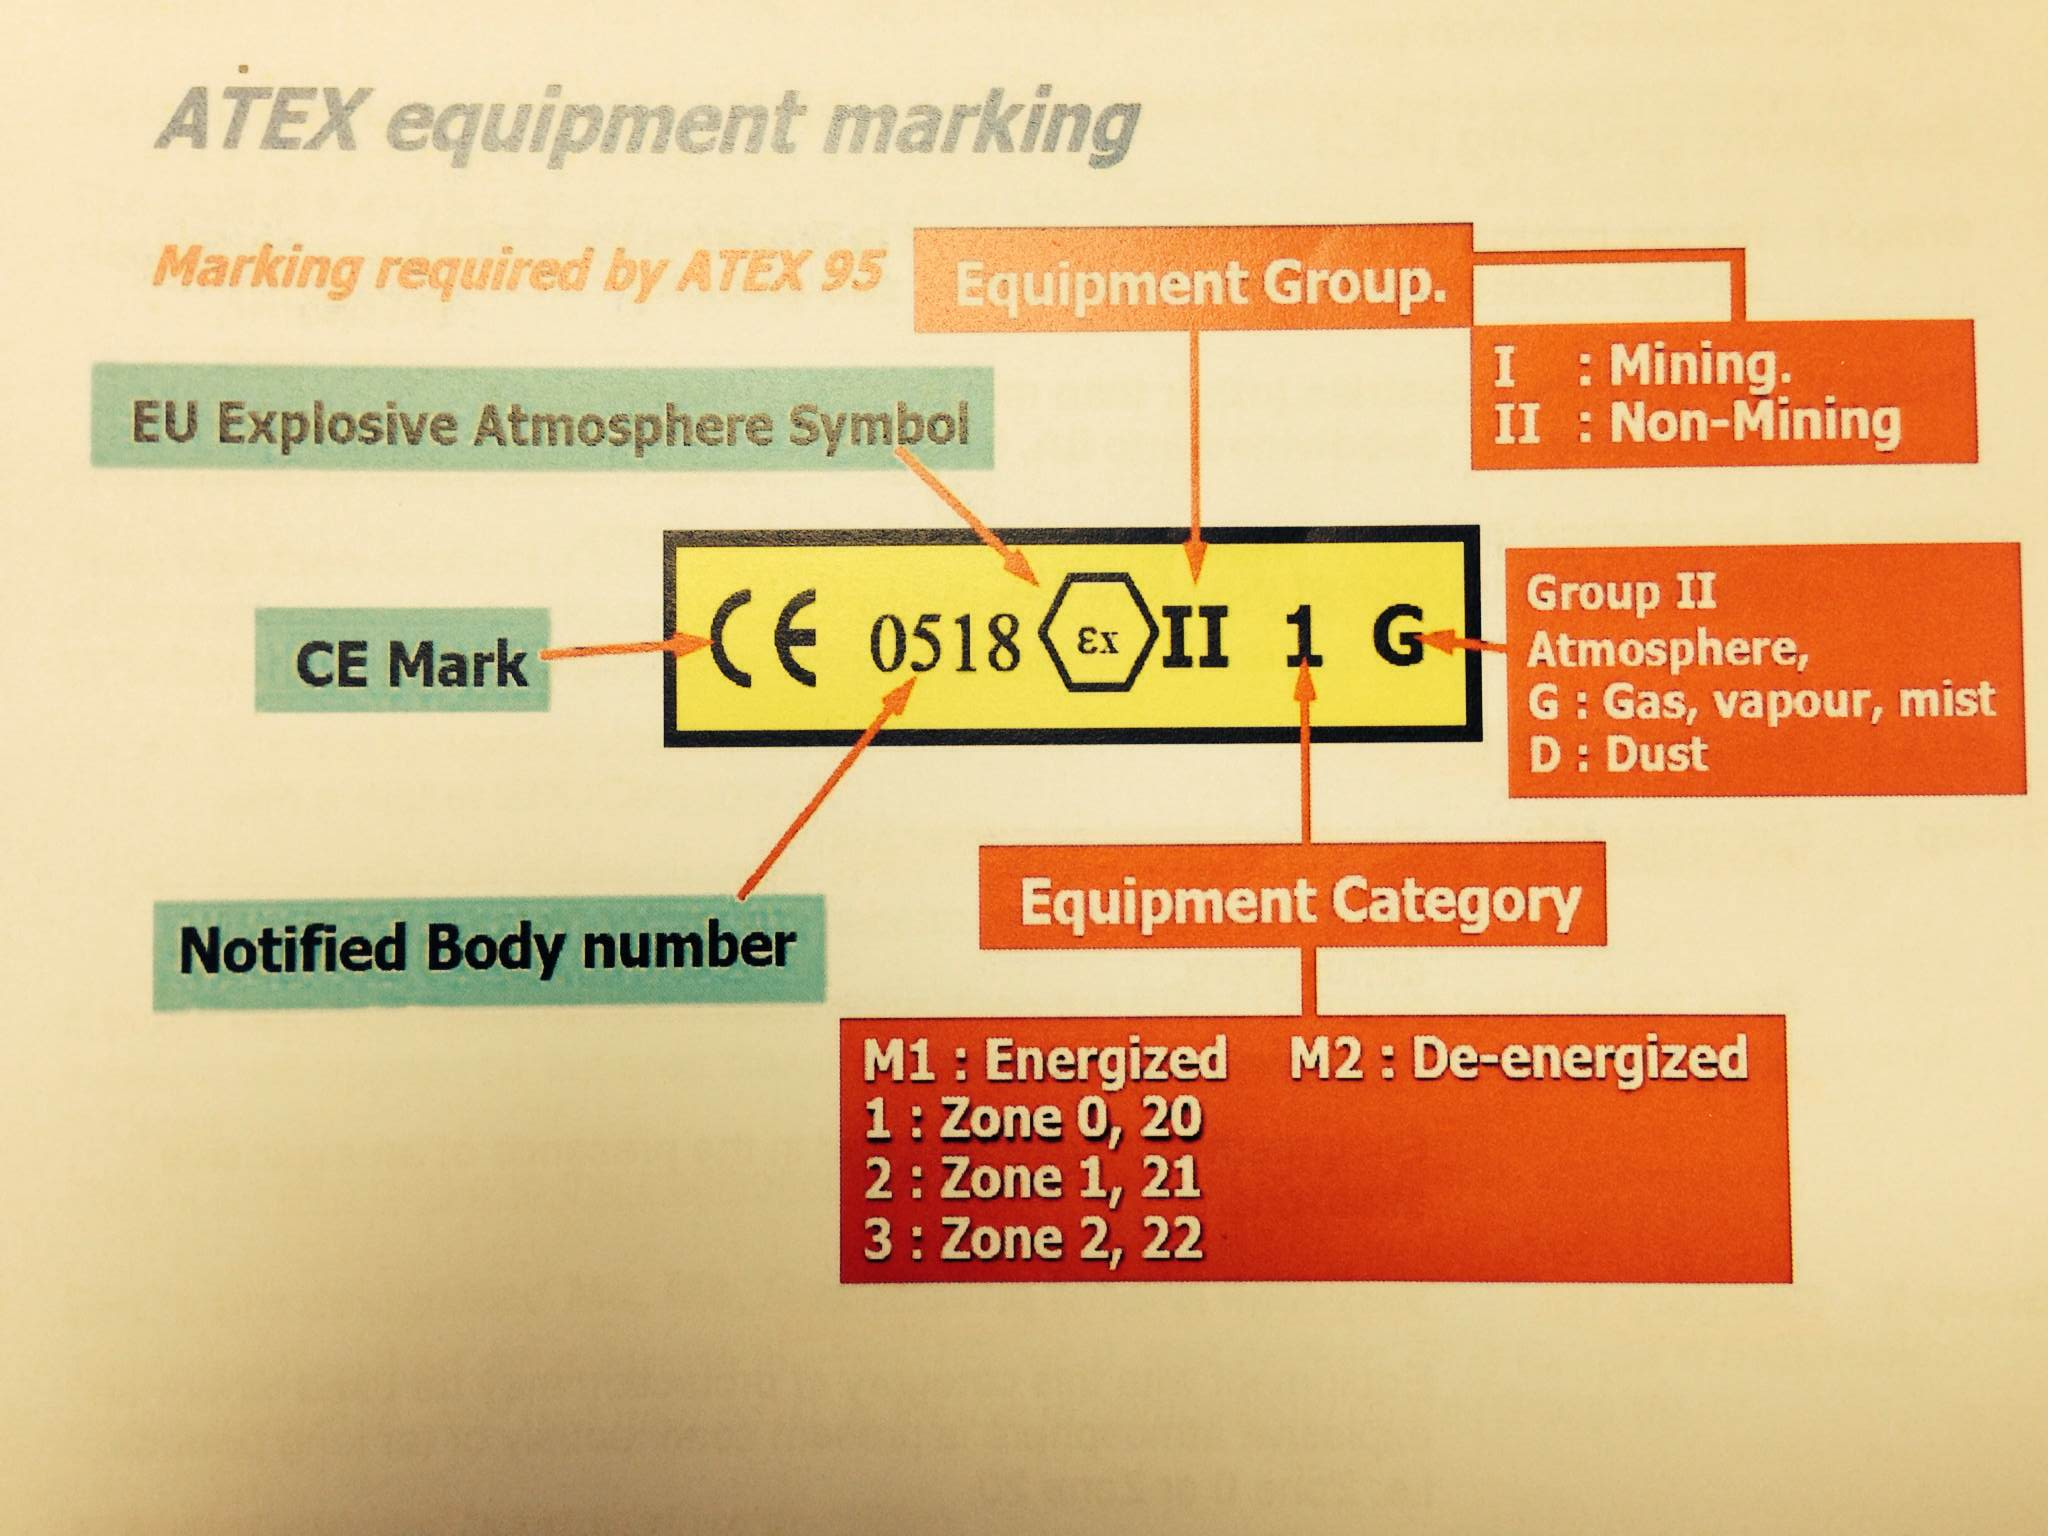 Hazardous download atex equipment marking ccuart Images